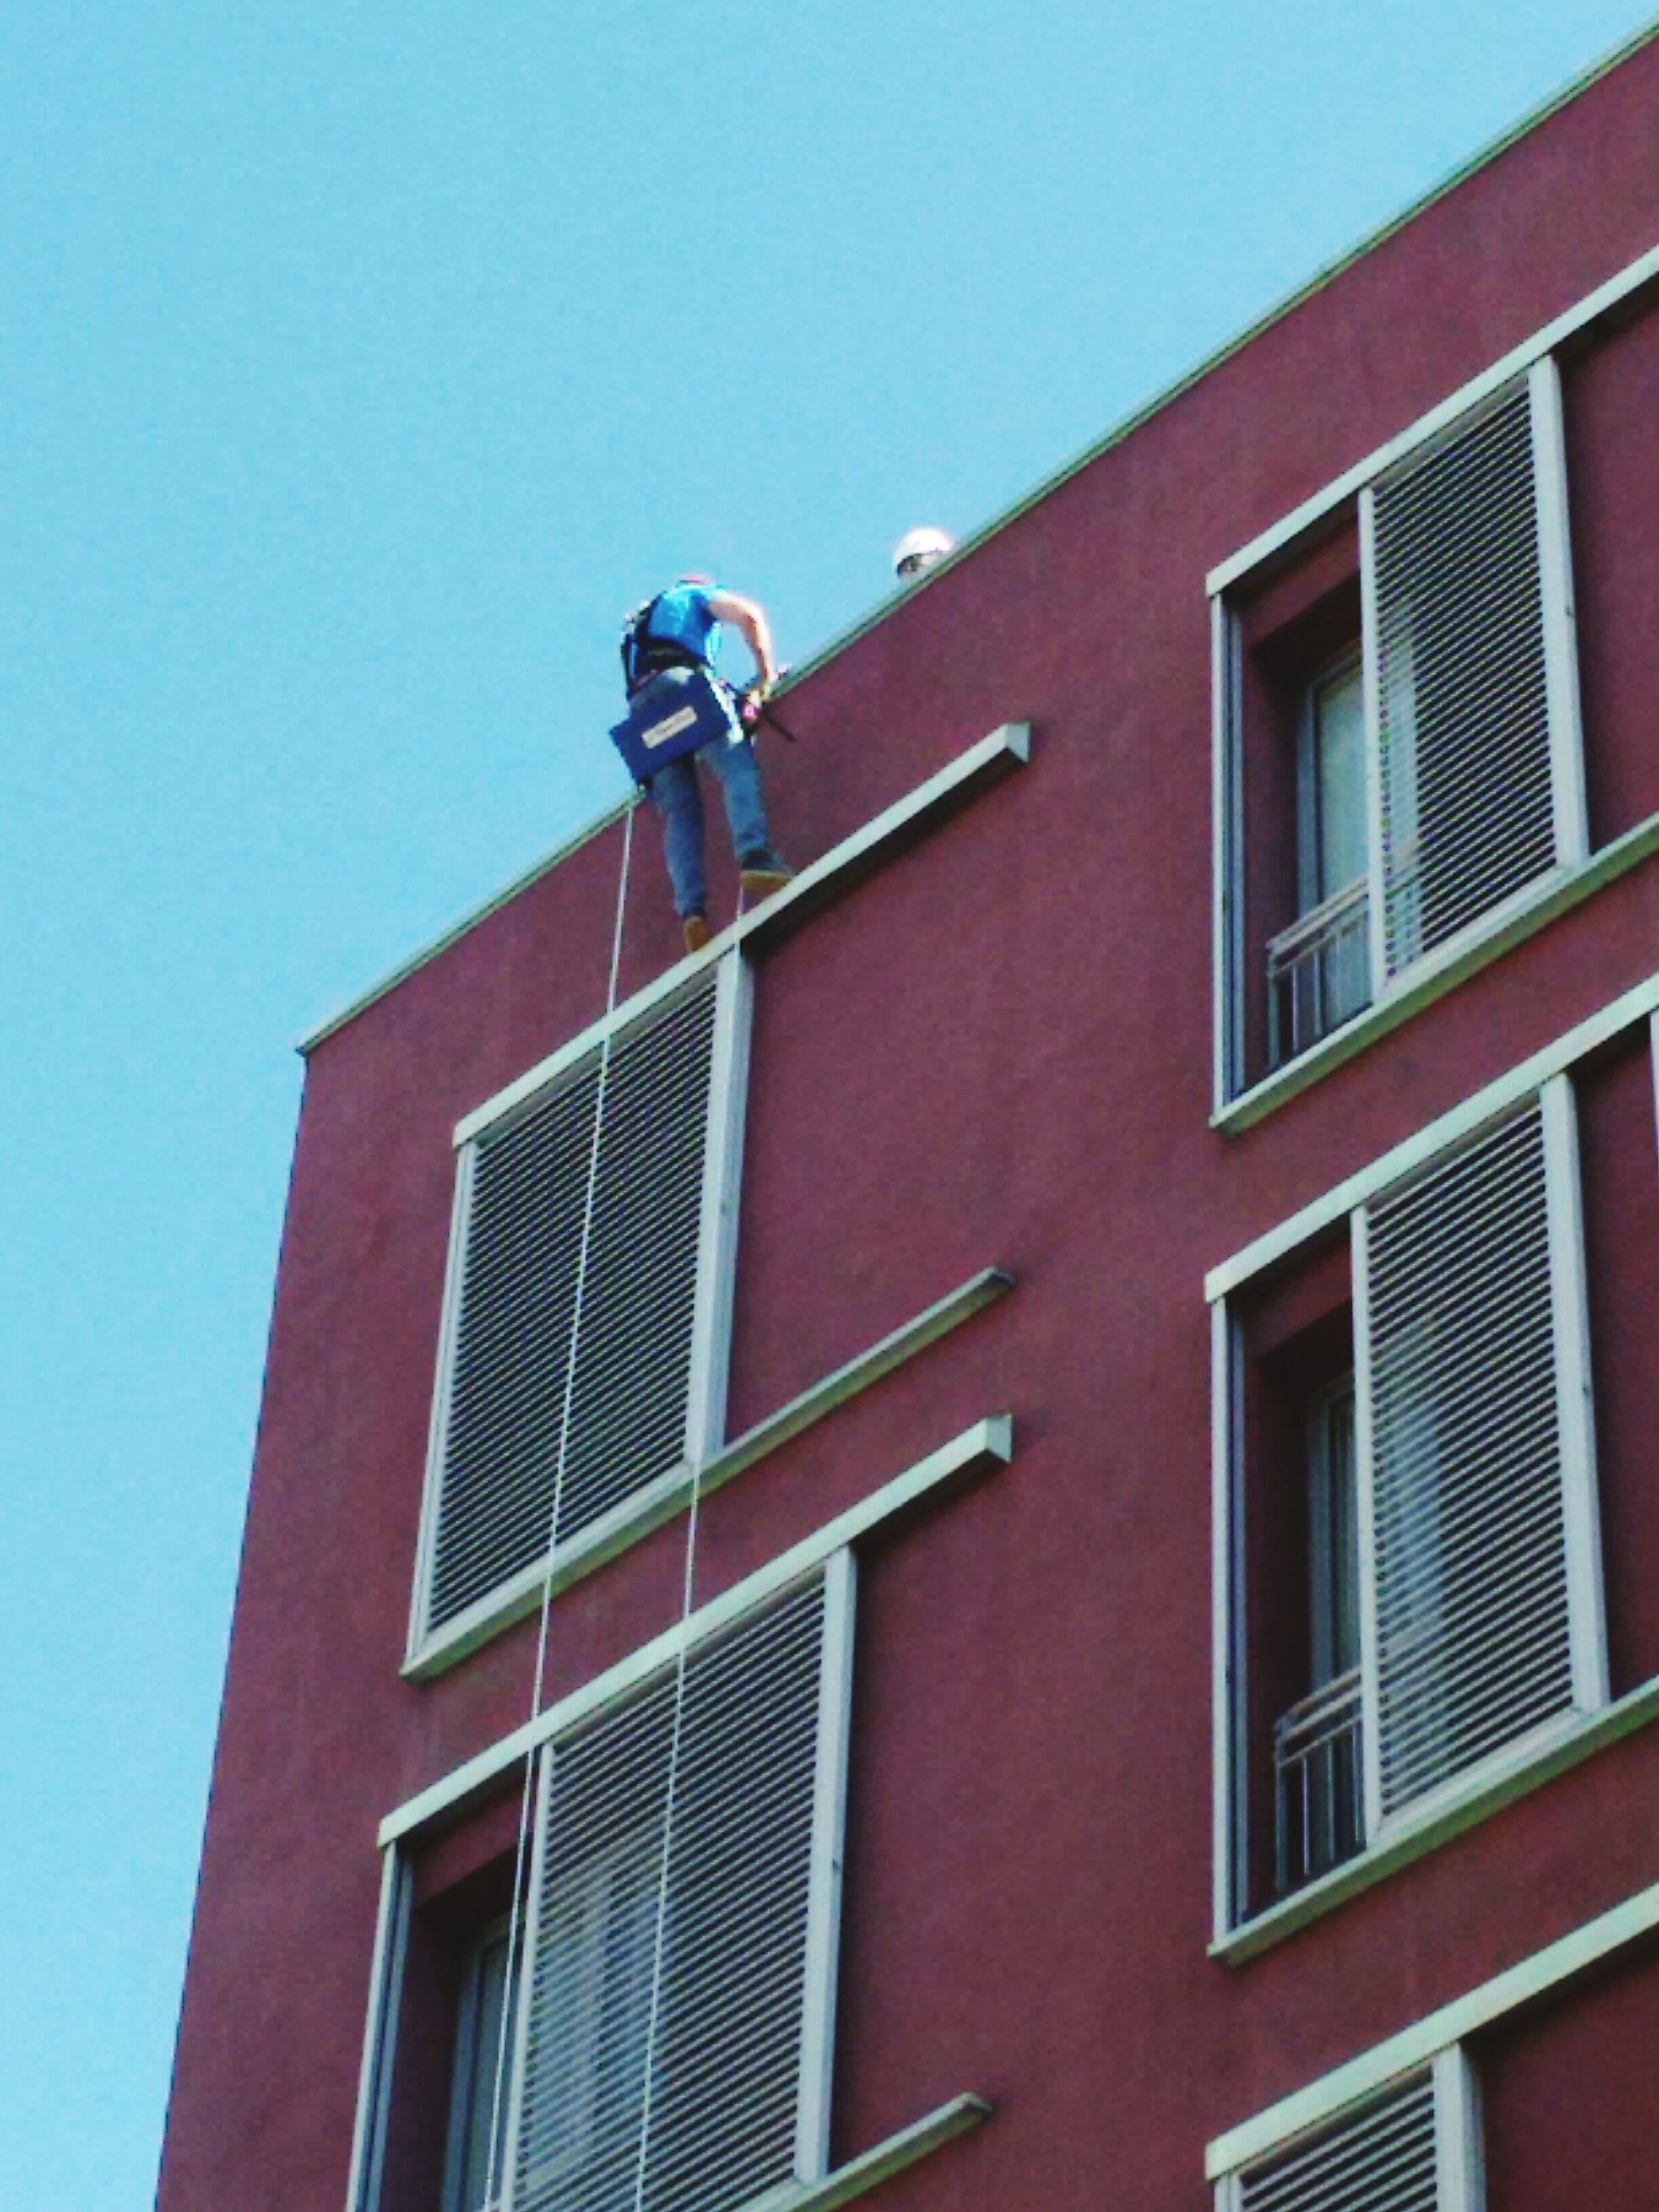 low angle view, architecture, building exterior, window, built structure, clear sky, day, outdoors, window washer, one person, occupation, men, real people, manual worker, sky, people